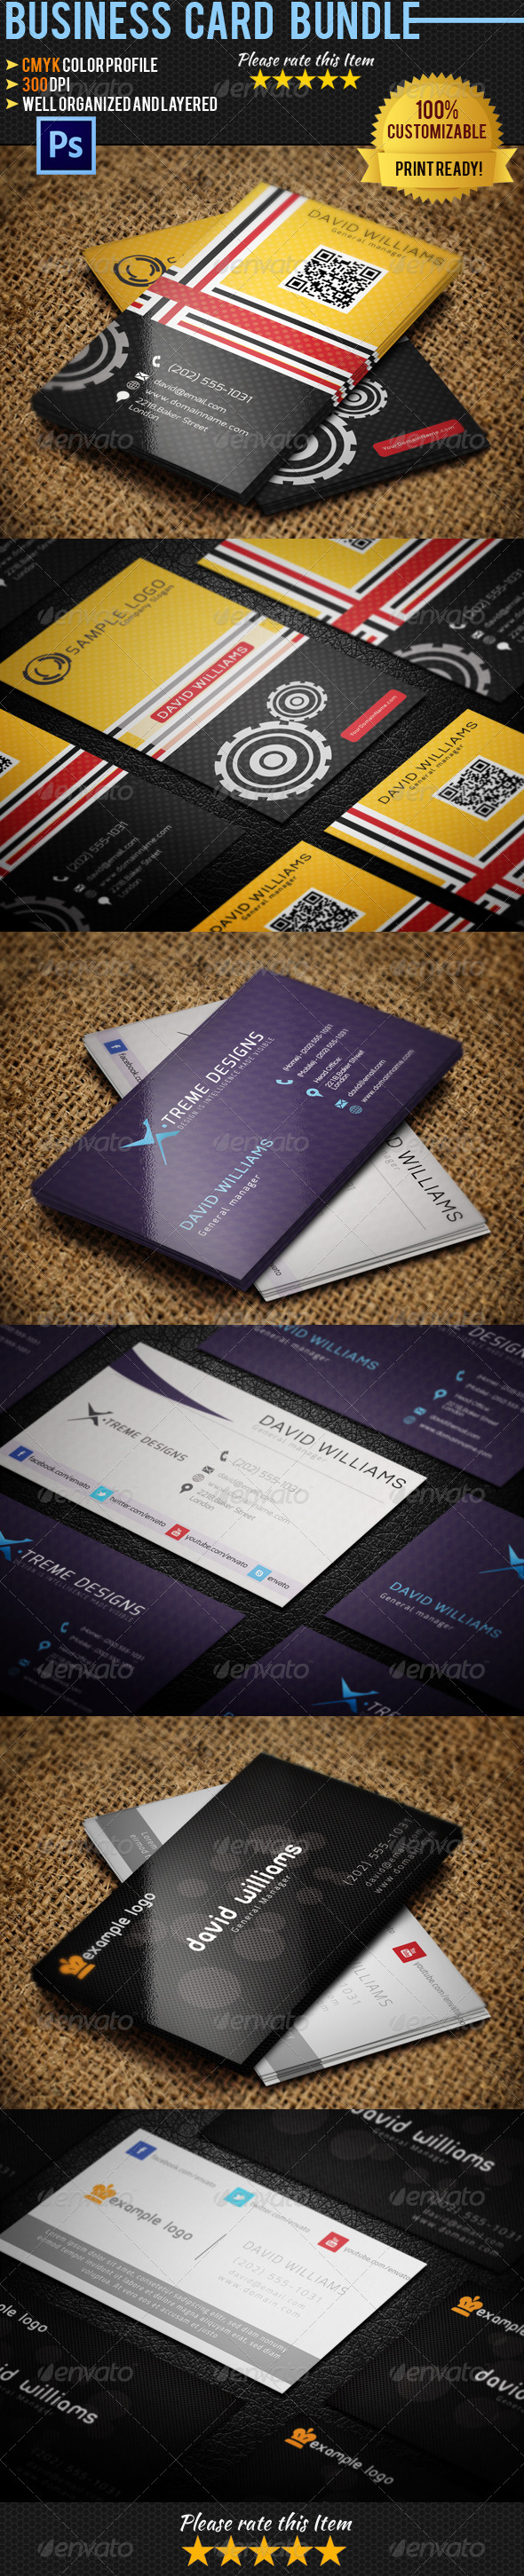 GraphicRiver Personal Business Card Bundle 02 4405647